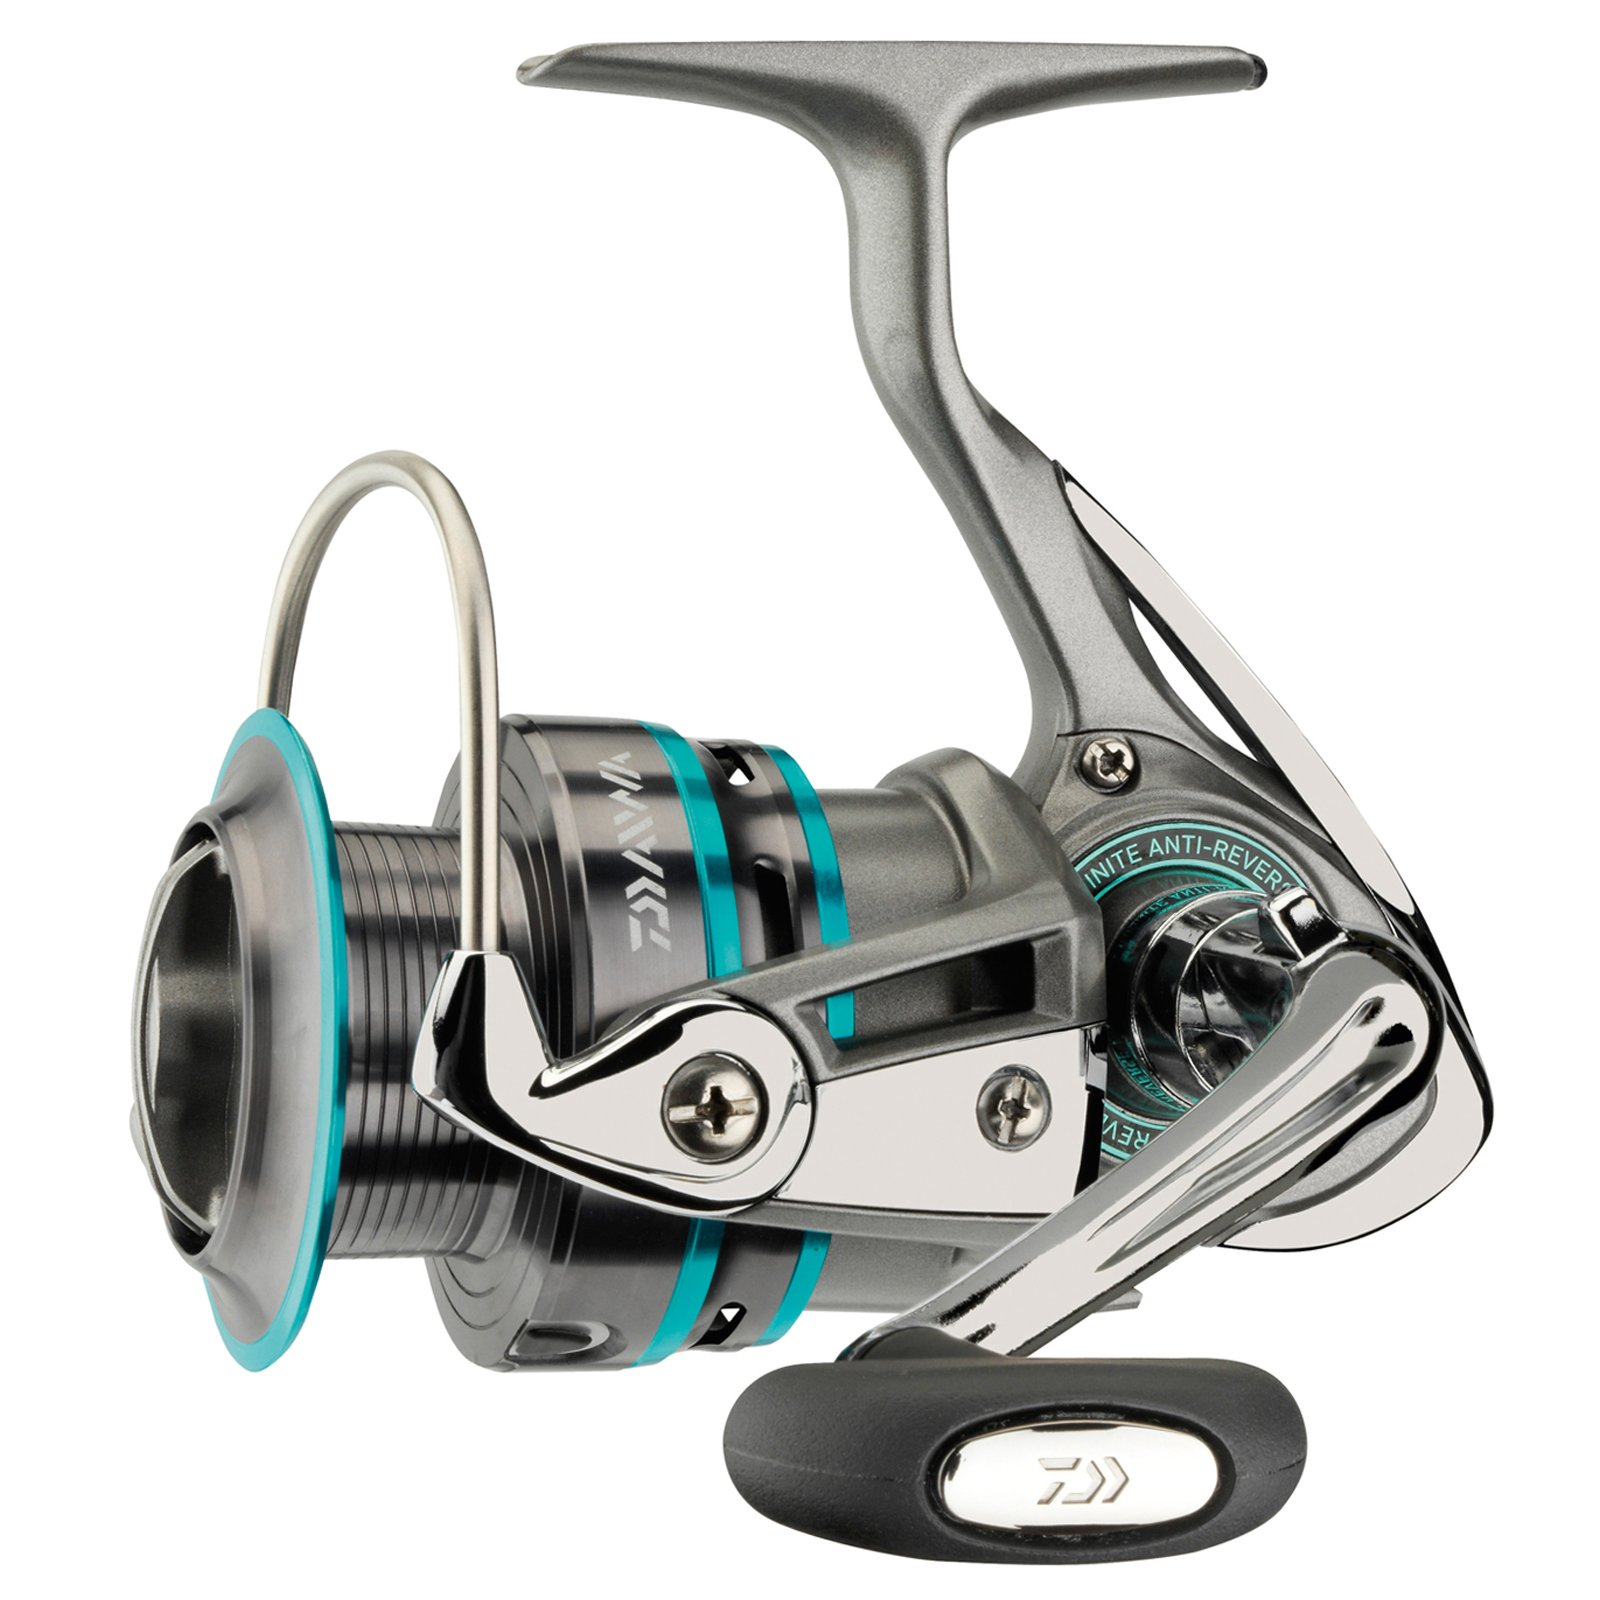 Daiwa Procaster Carrete Spinning Frontal 3000A + 4000A En agua ...